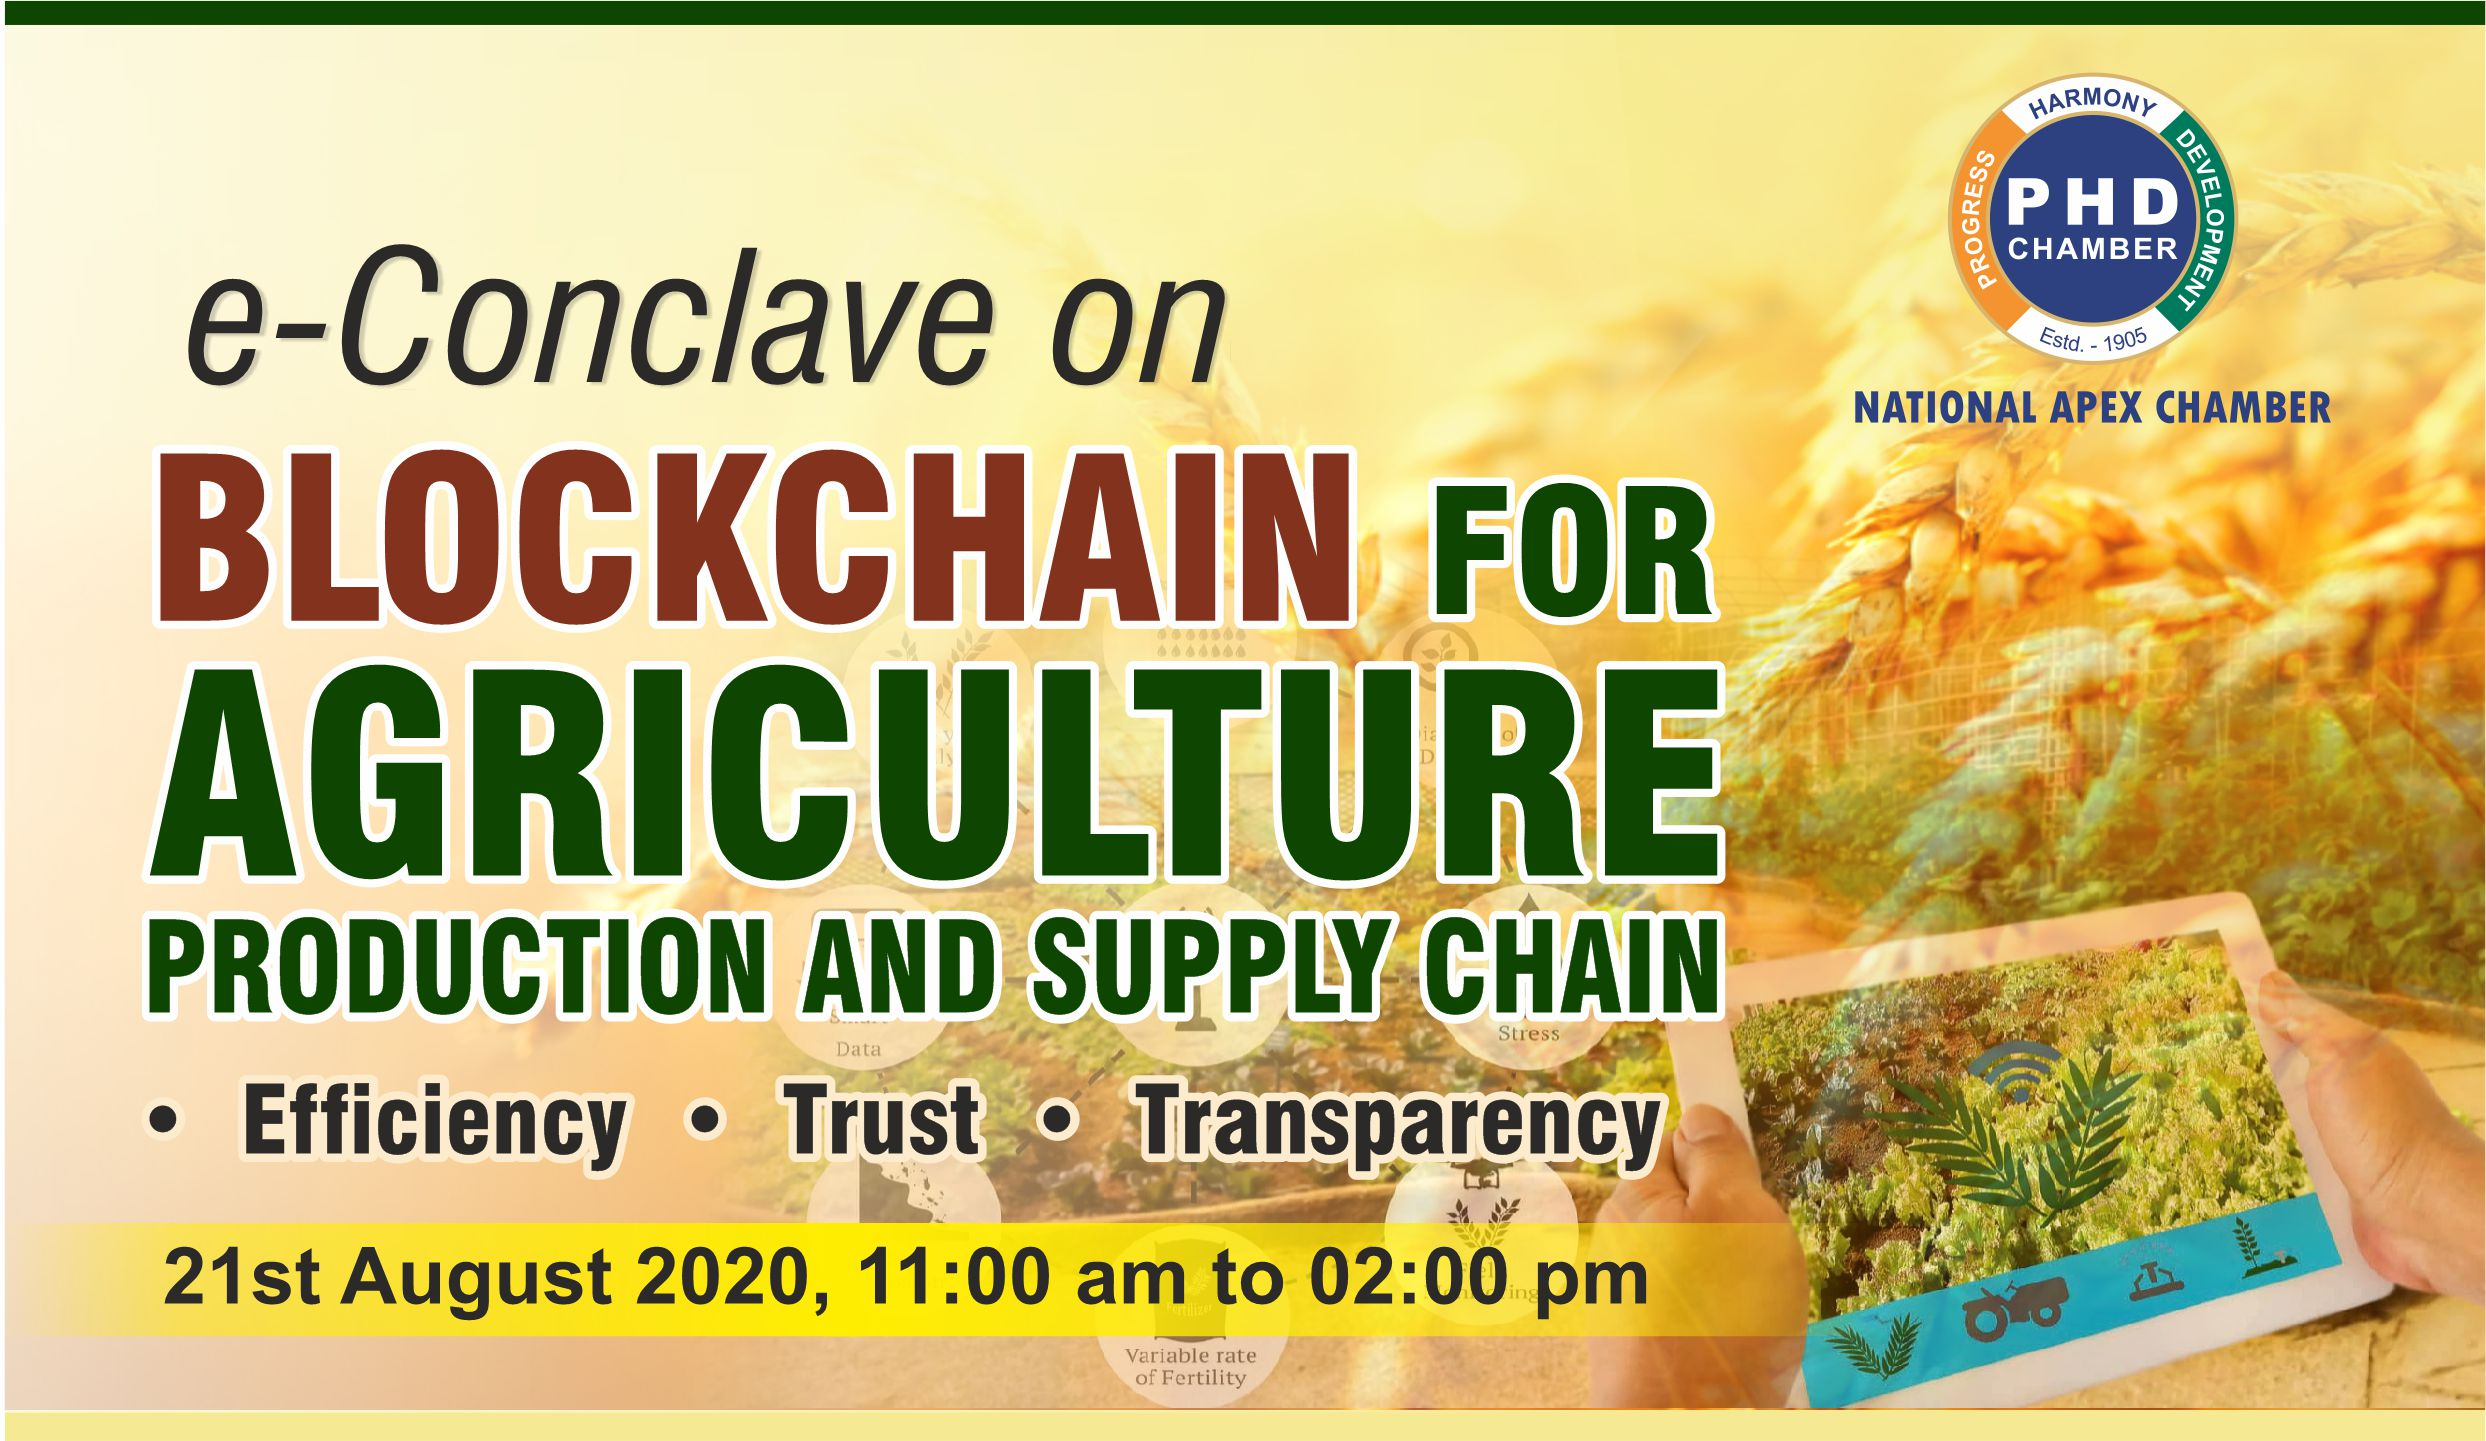 e-Conclave on Blockchain for Agriculture Production and Supply Chain: Efficiency | Trust | Transparency